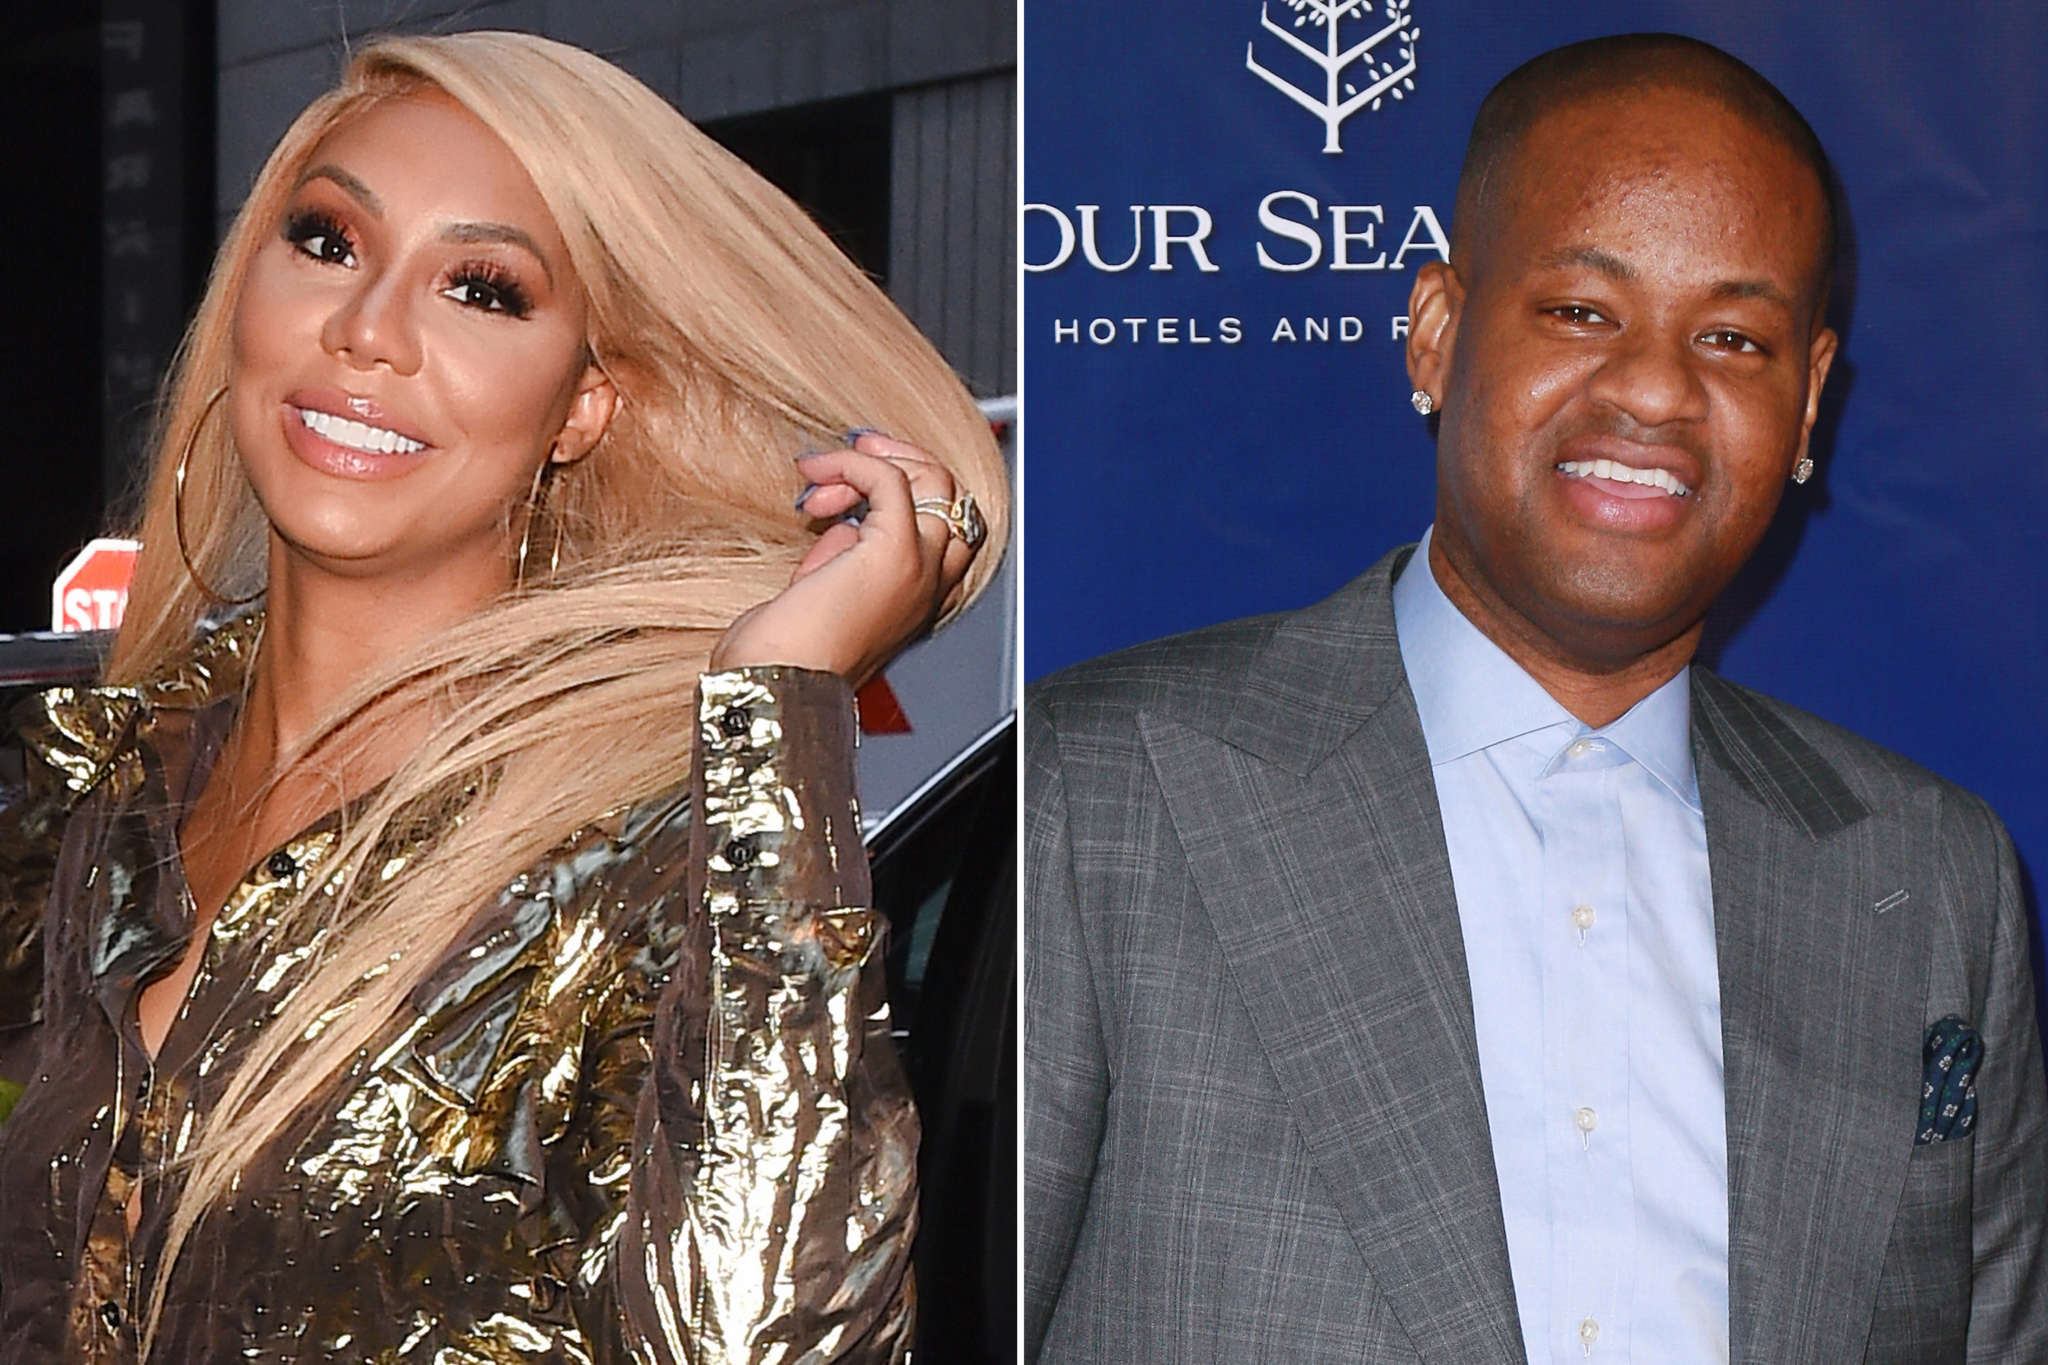 Tamar Braxton Is Finally A Divorced Woman - The Marriage To Vincent Herbert Has Finally Come To An End